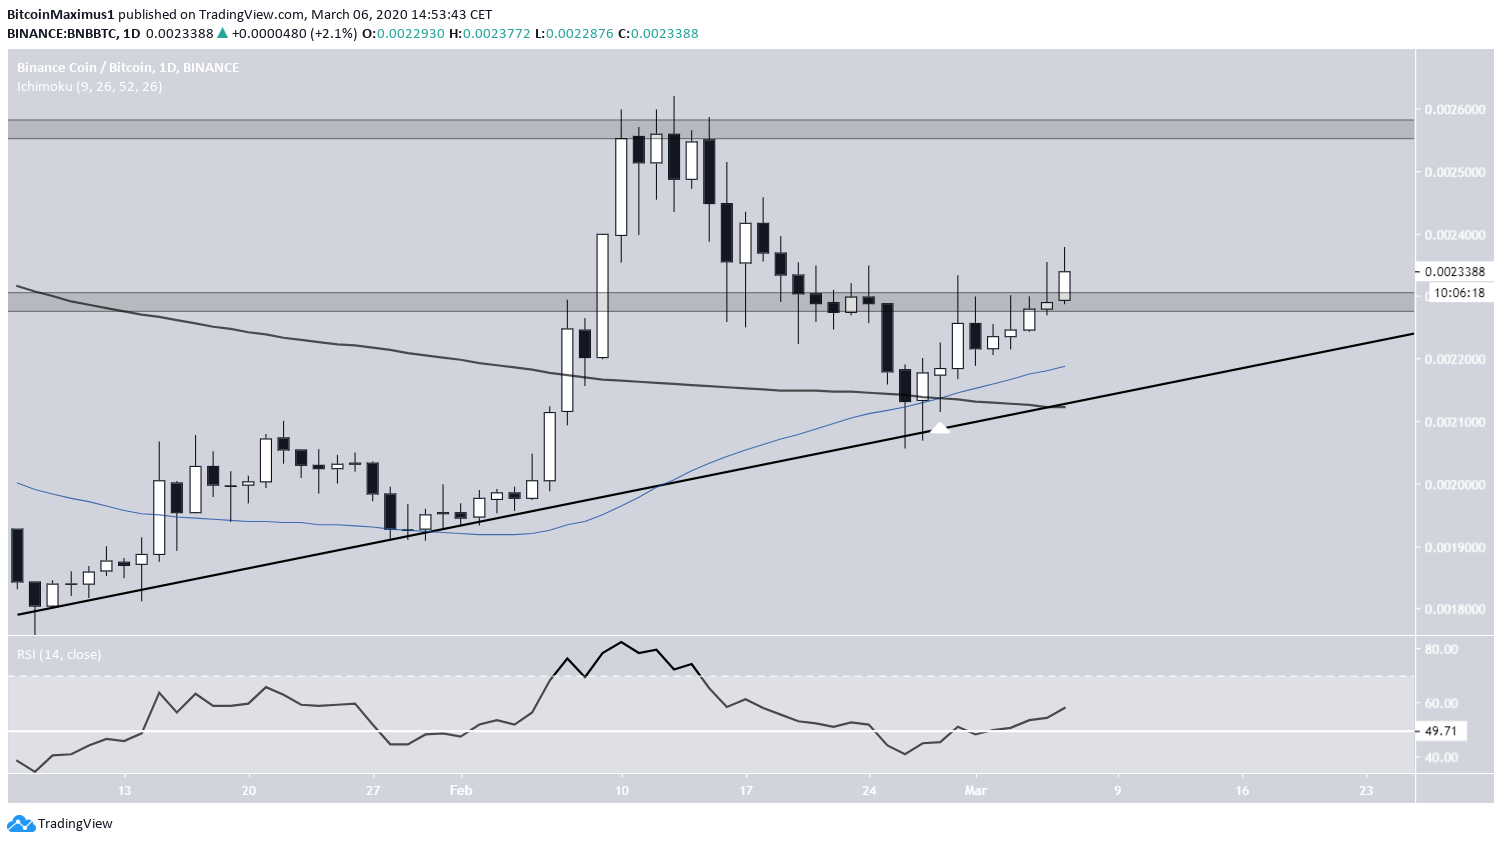 BNB Ascending Support